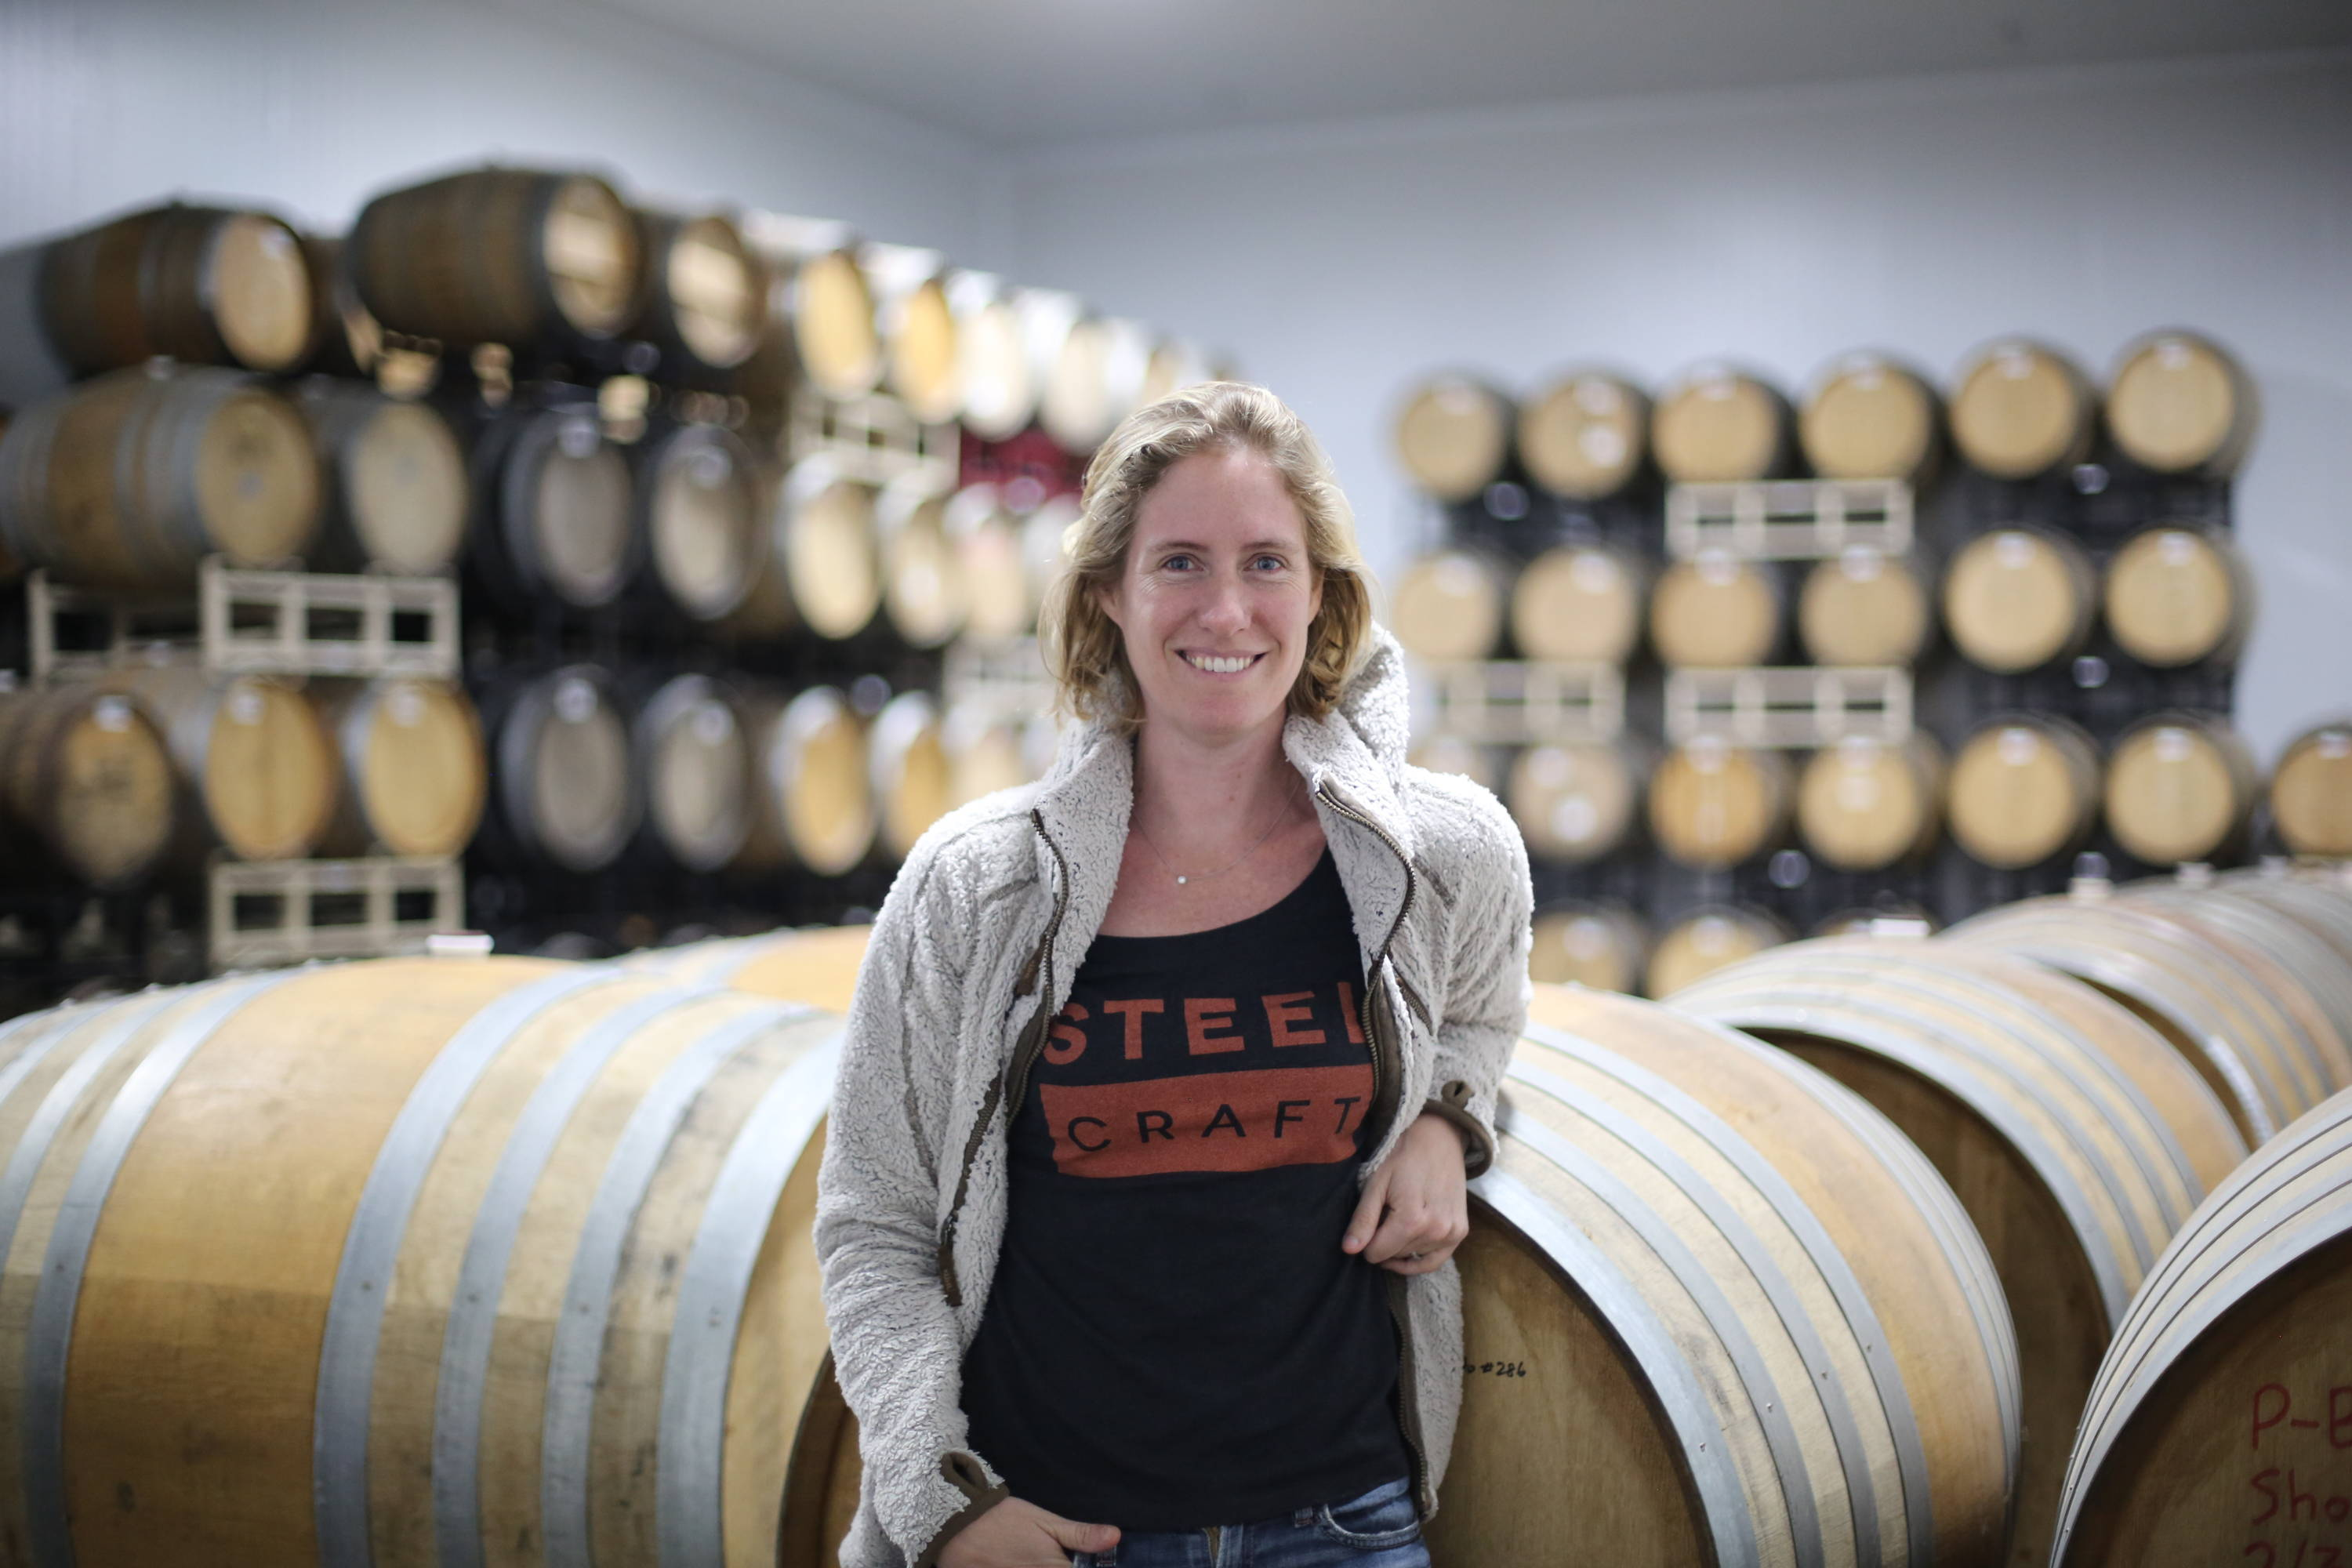 Owner, Laurie Porter, leaning on a wine barrel in a room full of barrels.